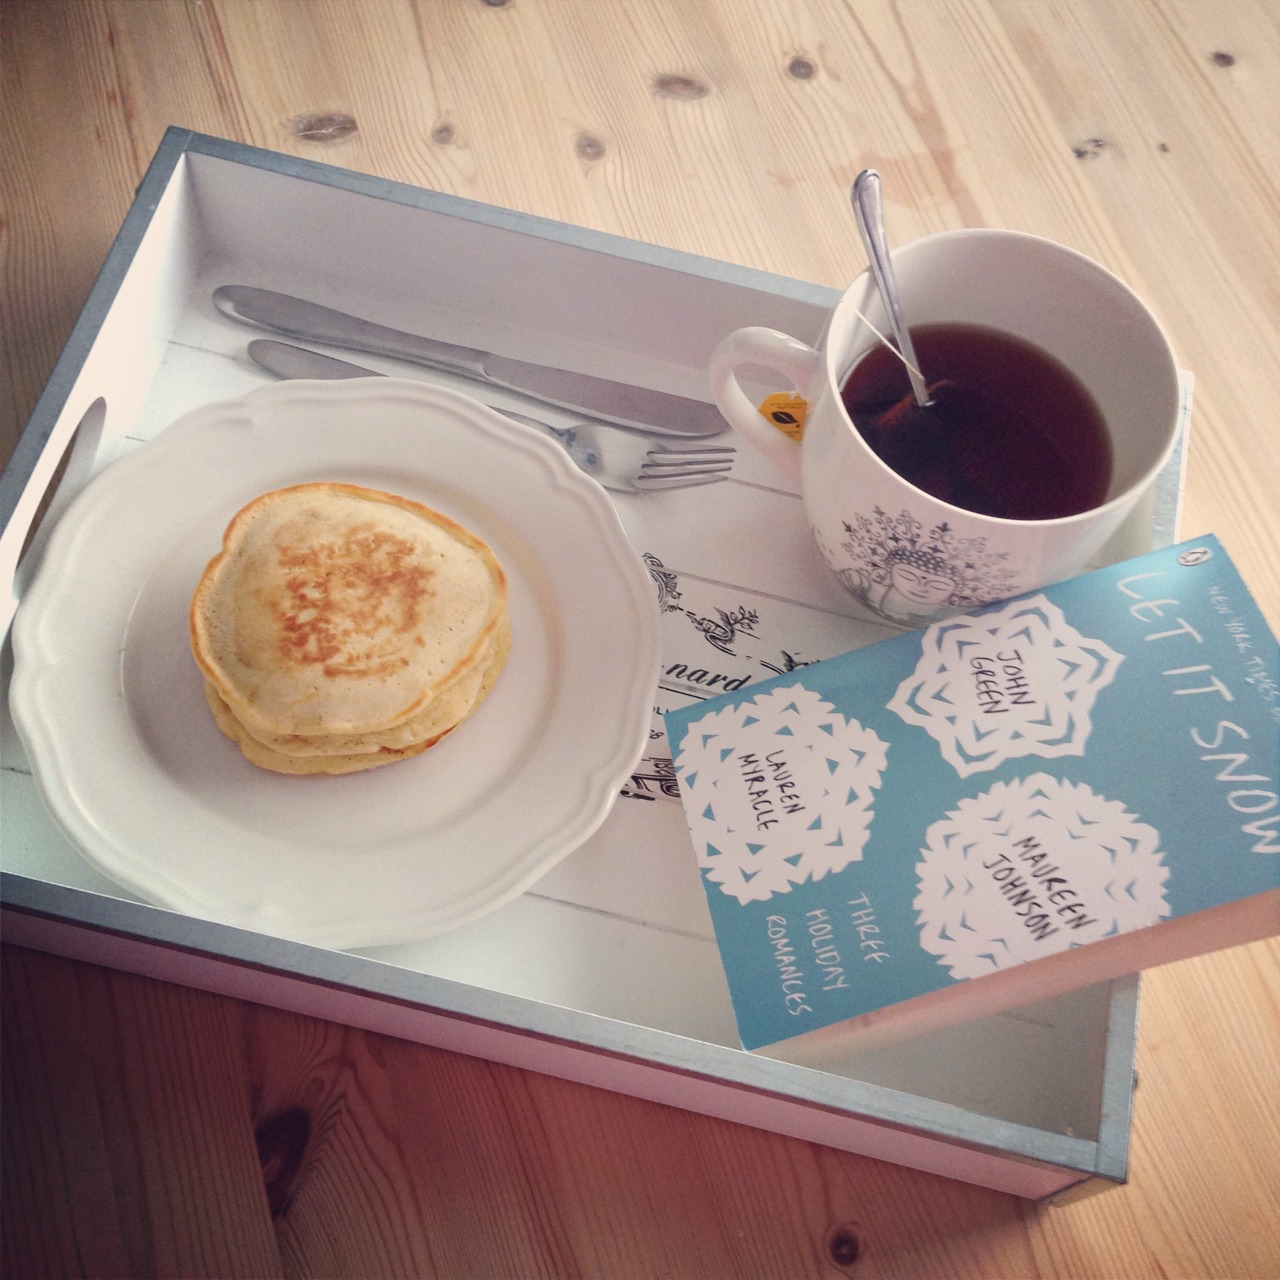 fitforfightx: This was much needed after a long workout! Healthy pancakes, some tea and a good book 👍 THIS LOOKS CLASSY.